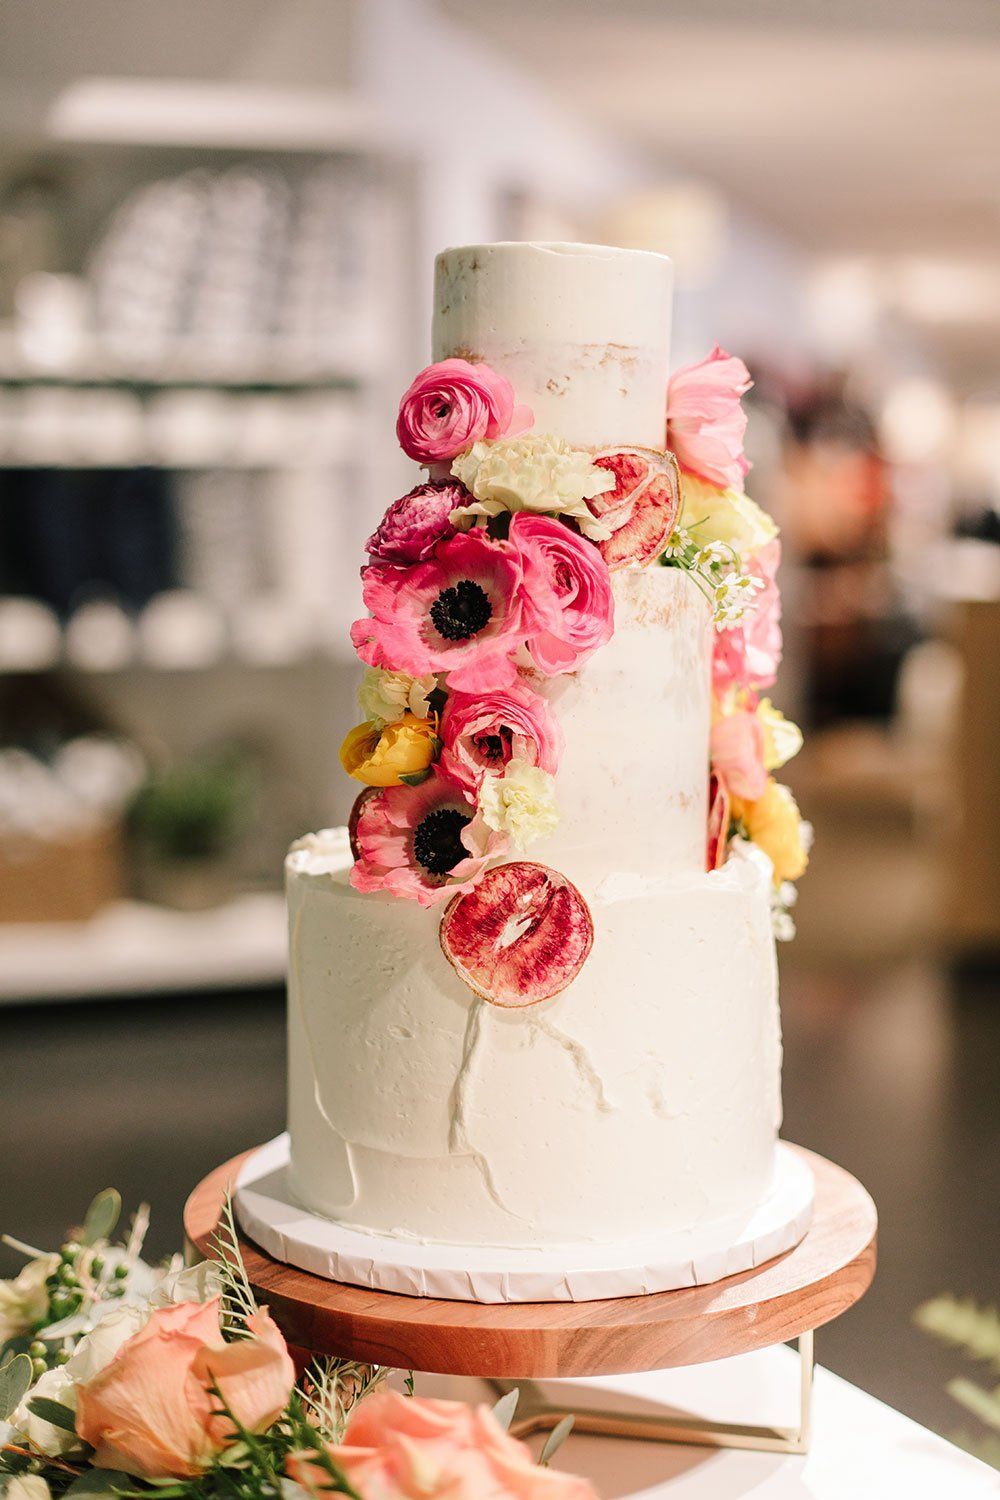 Cake With Pink Flowers Running Down The Side Wedding Cakes